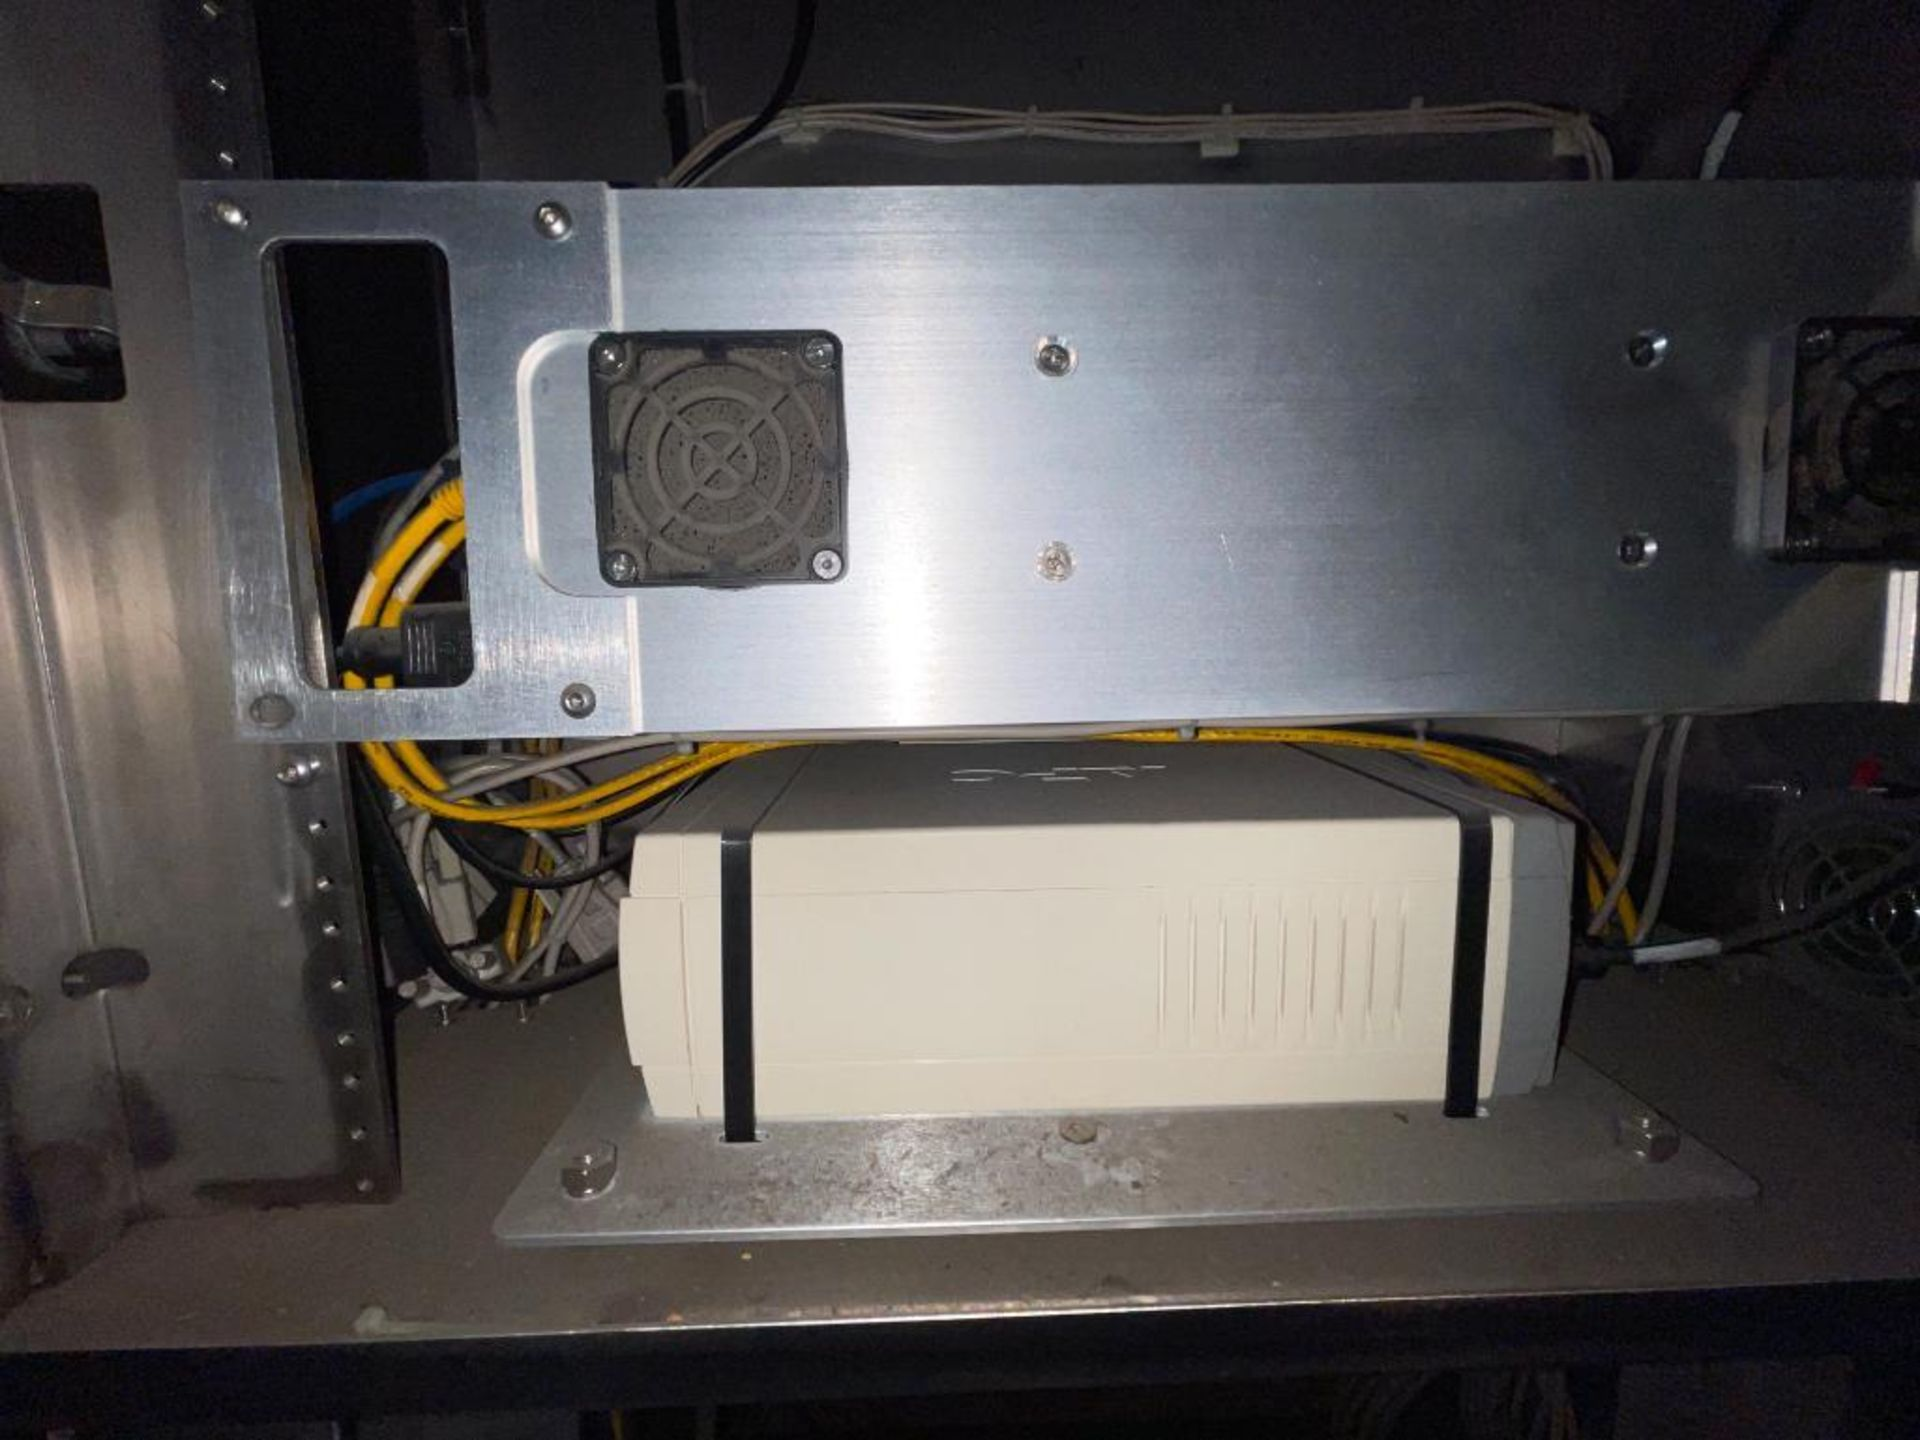 stainless steel pedestal control panel - Image 10 of 20